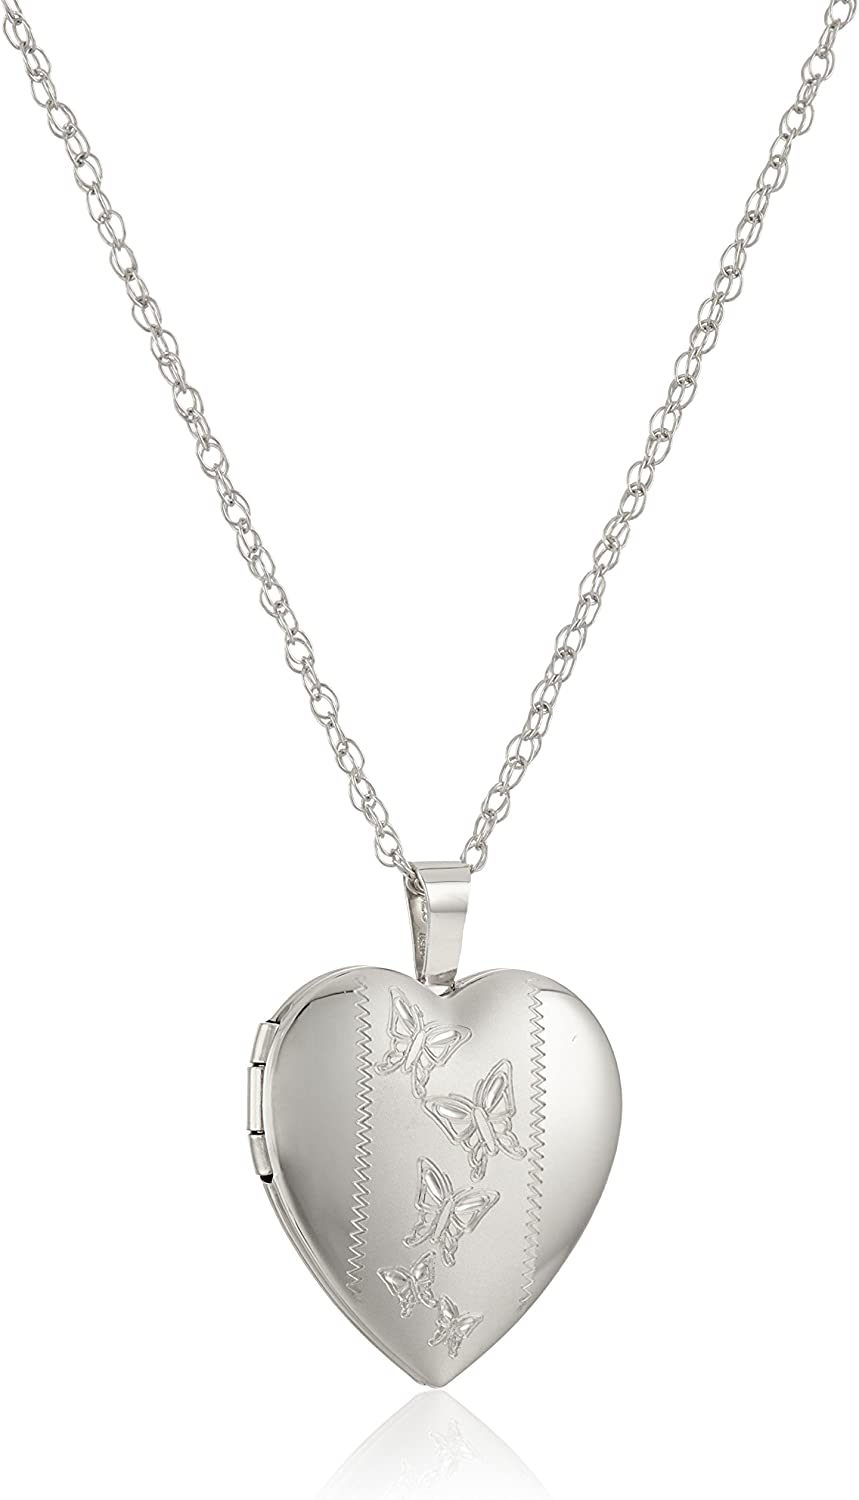 Sterling Silver Hand Engraved Floral Pendant with Satin an Max 41% OFF Credence Heart